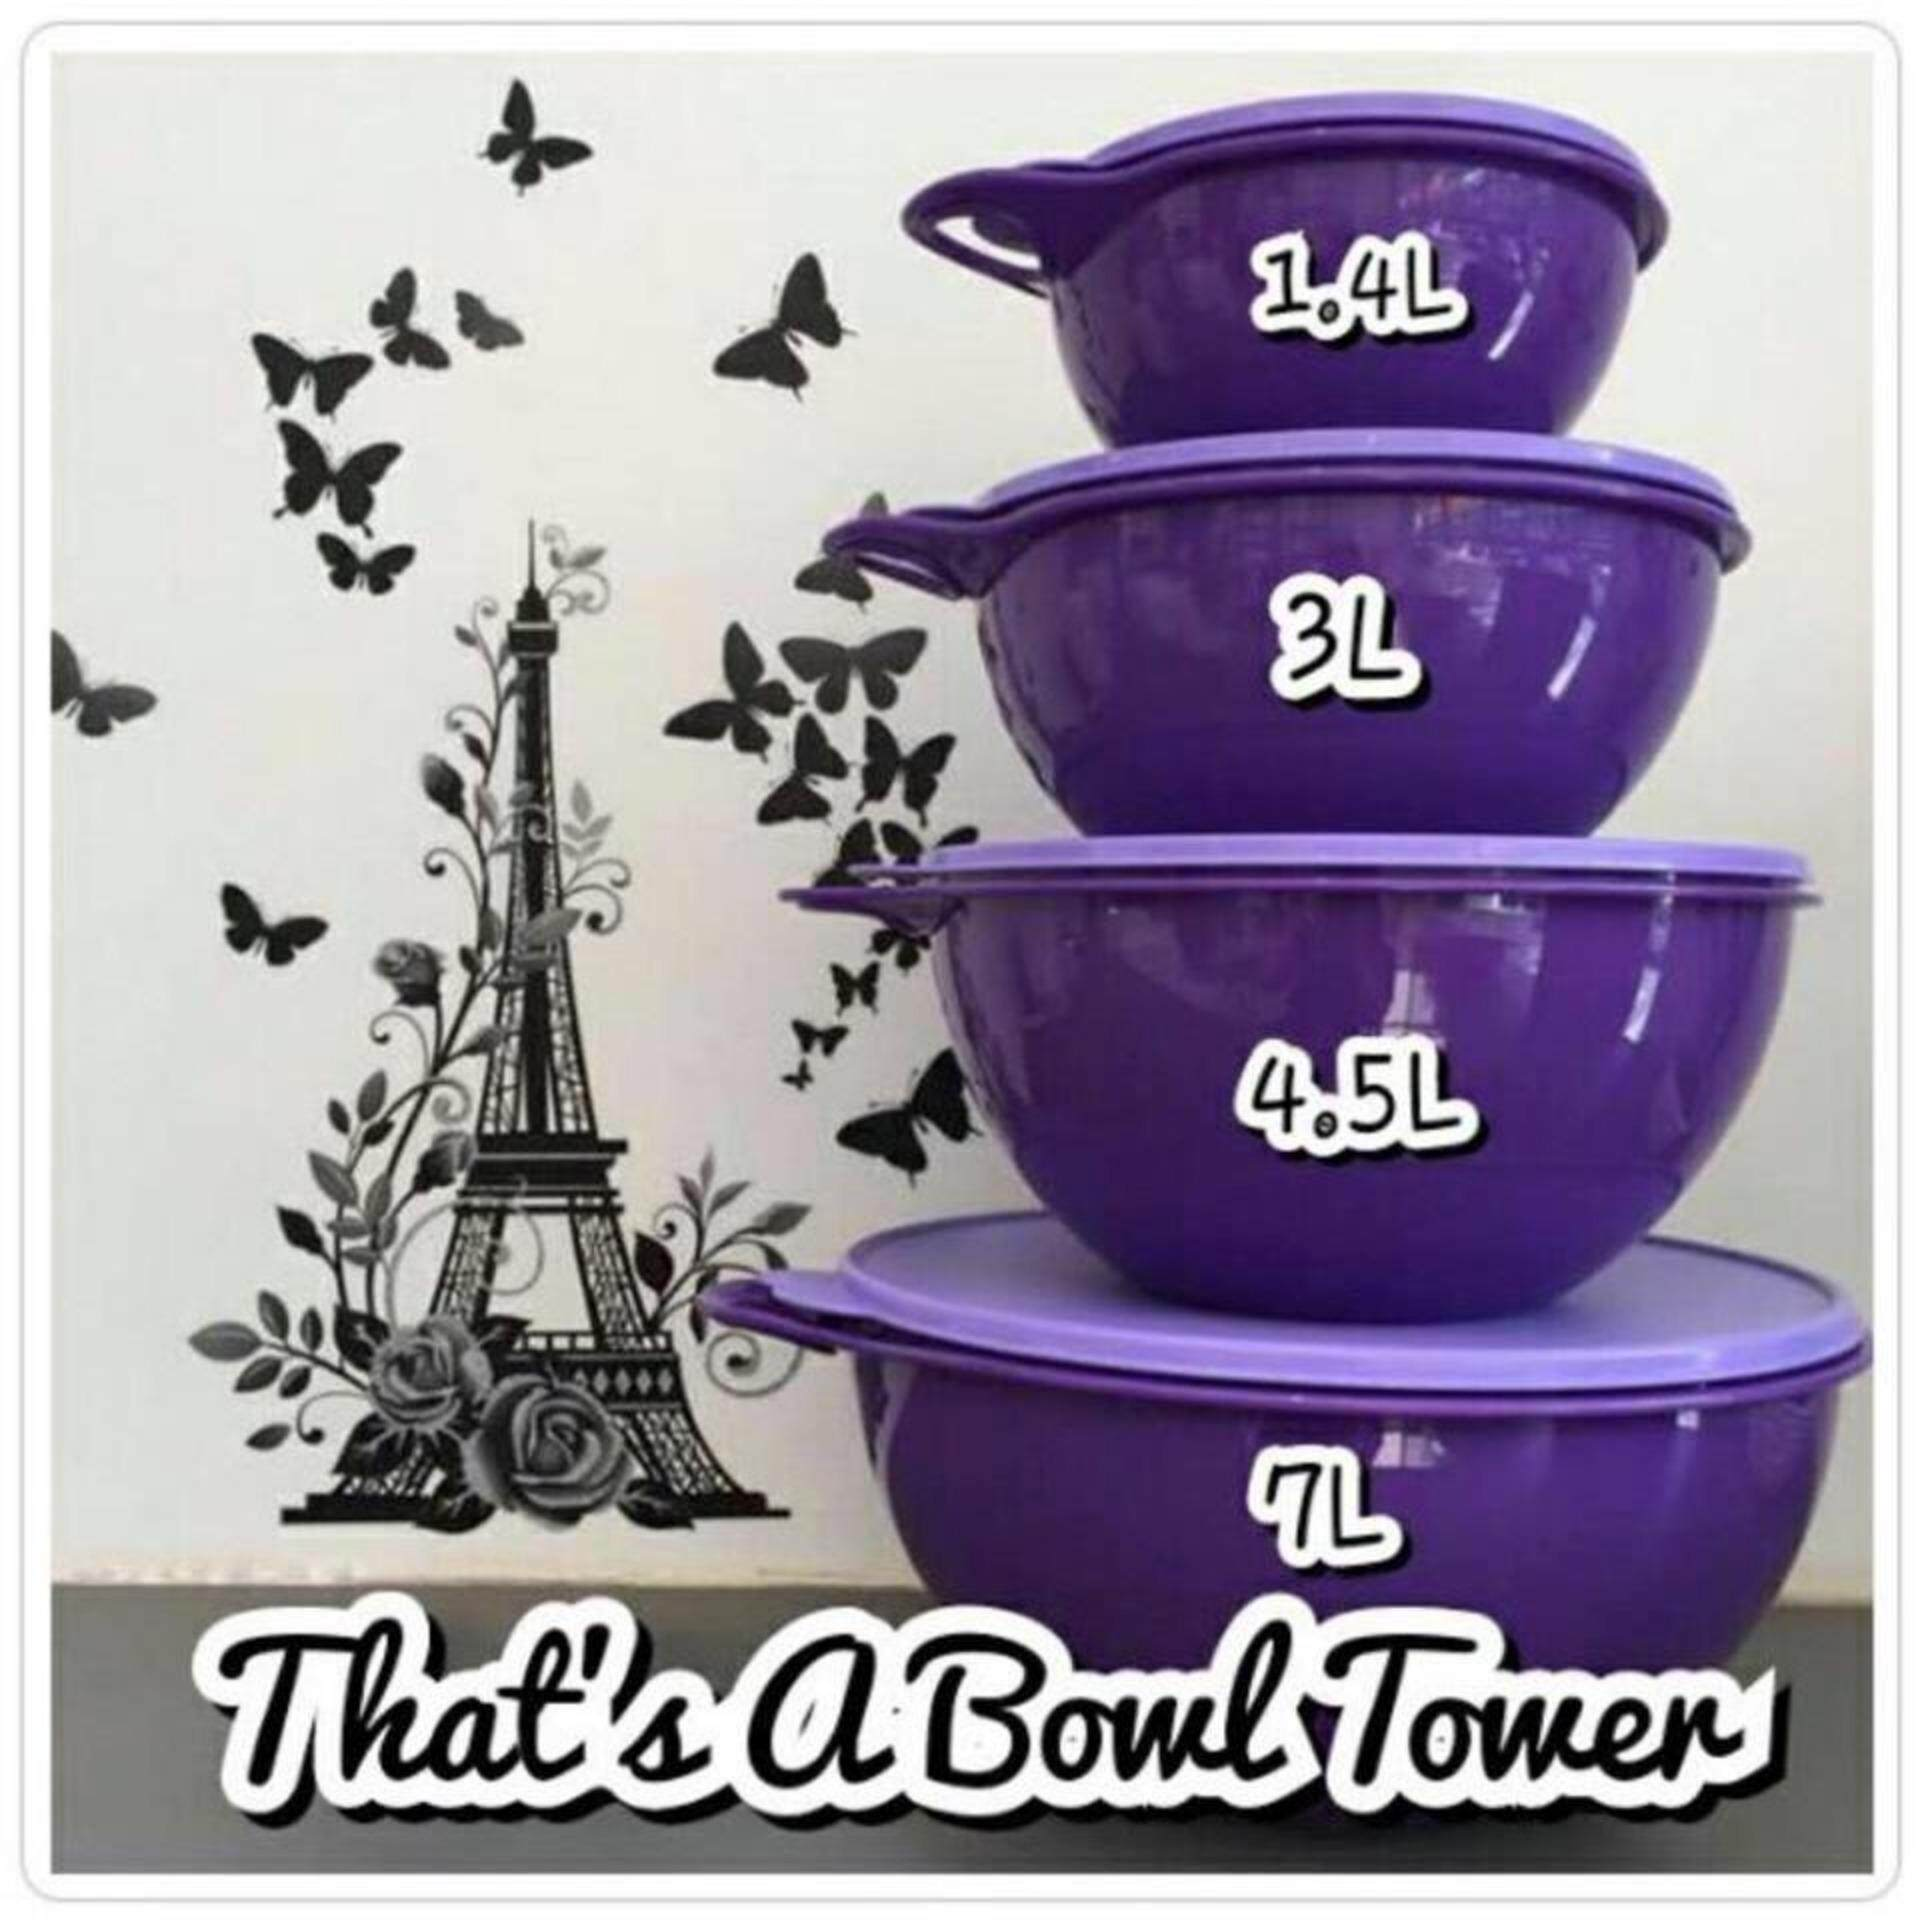 Tupperware Thats A Bowl Tower (1)4.5L Only - Purple